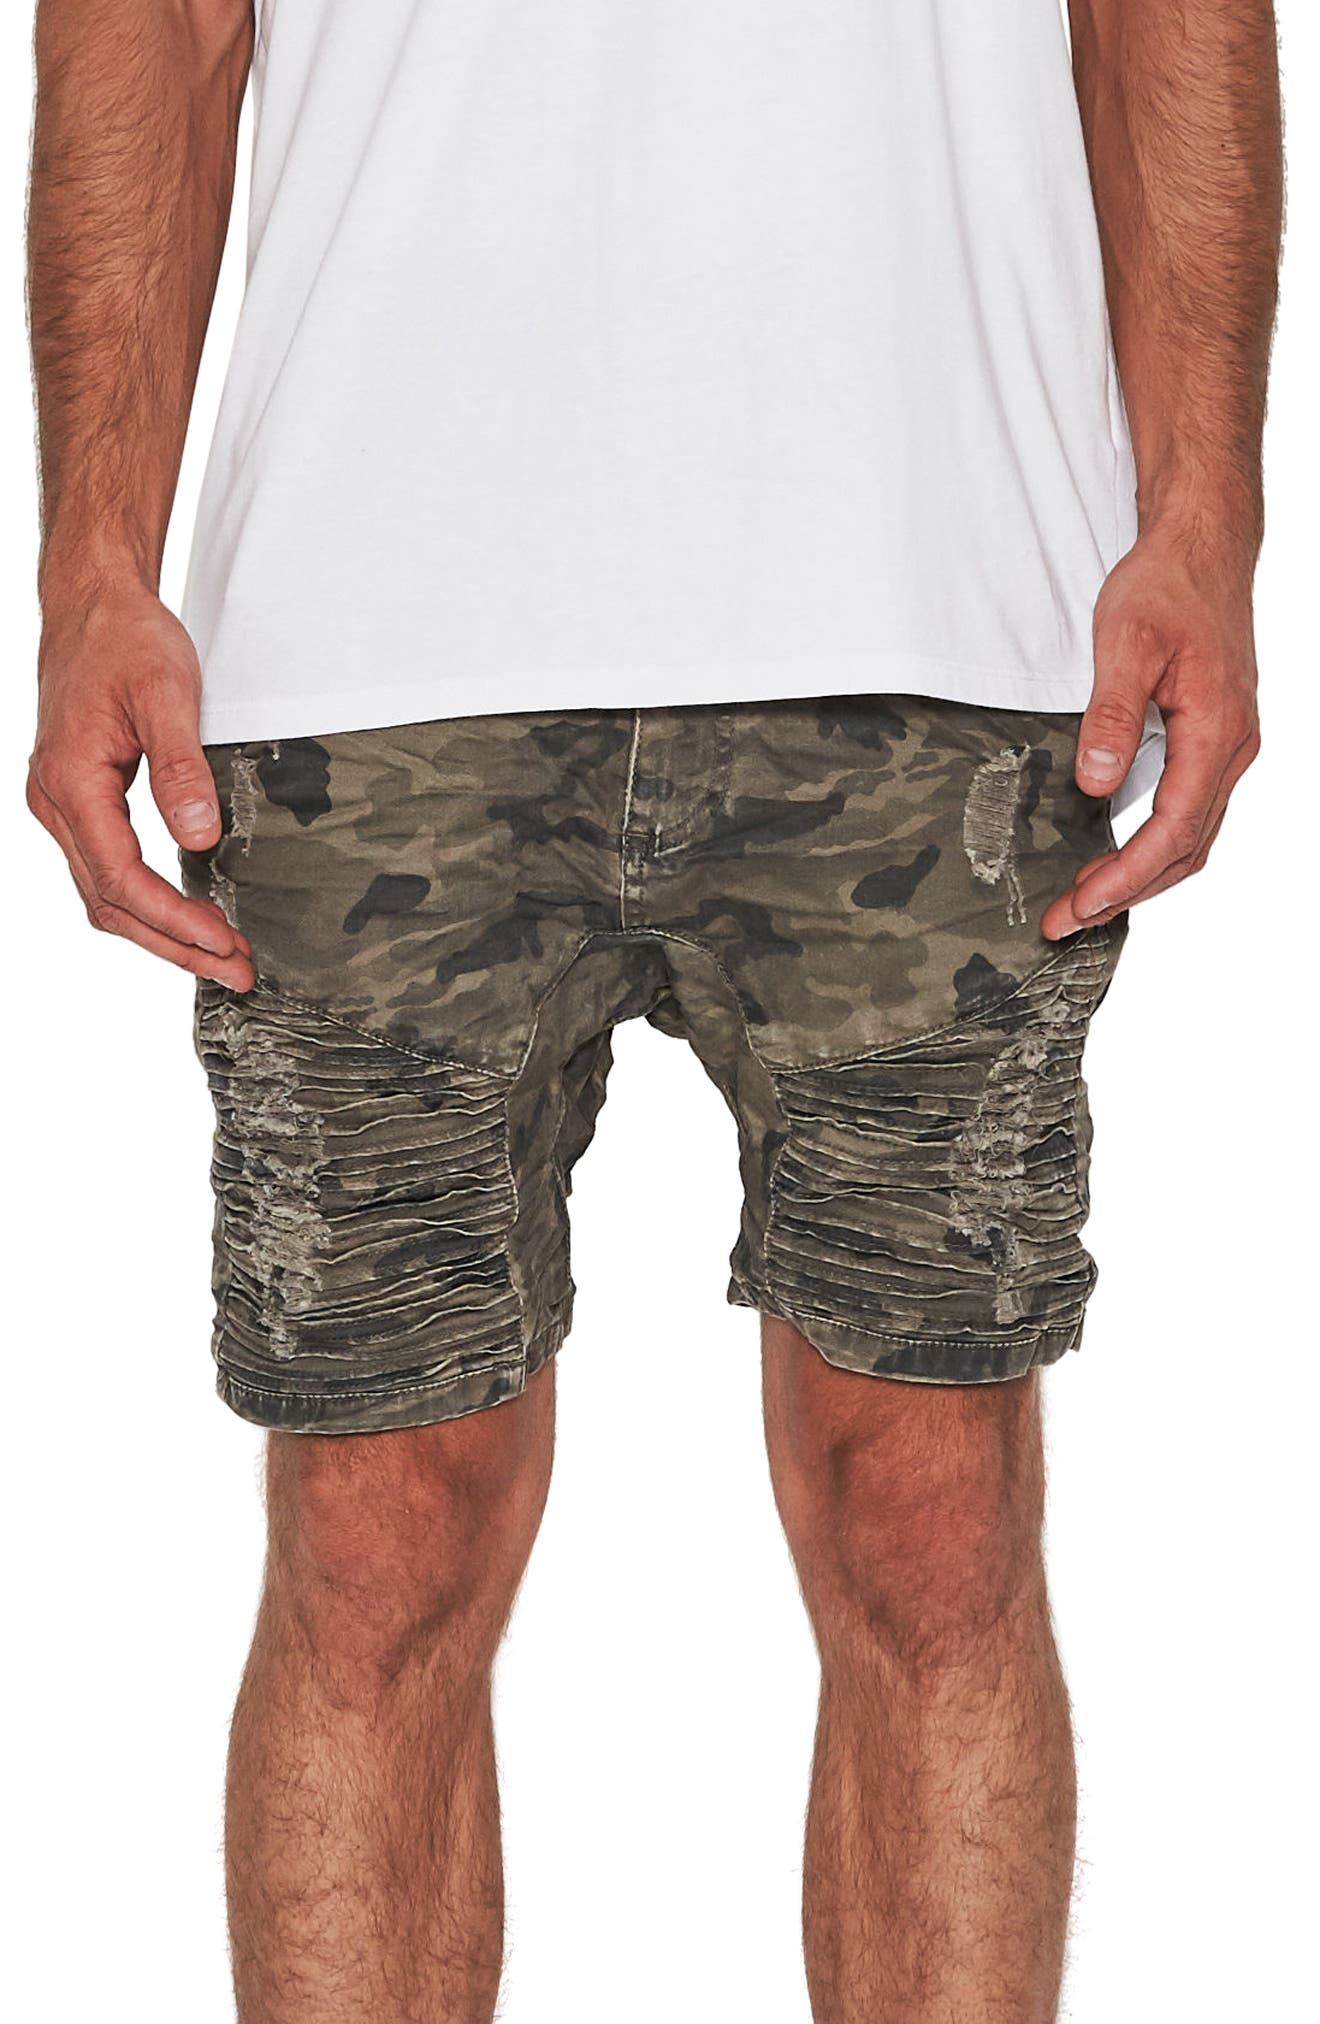 Destroyer Shorts,                         Main,                         color, Airwolf Camo